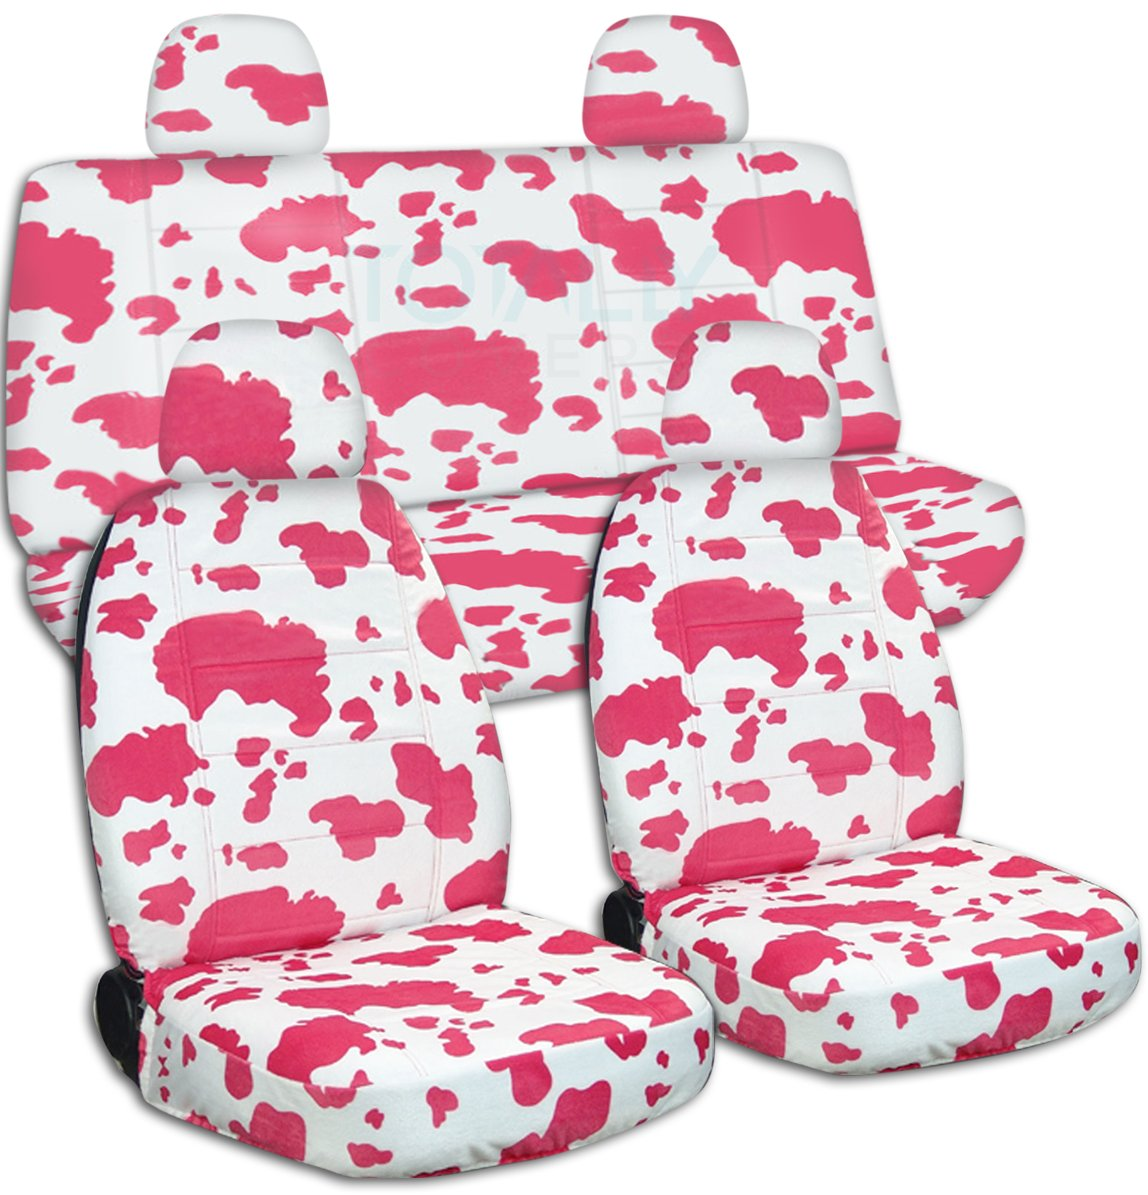 - Semi-Custom Fit Headrest Covers: Cow Full Set 30 Prints 2 Front + 2 Rear Big Pattern Animal Print Car Seat Covers w 4 Will Make Fit Any Car//Truck//Van//SUV